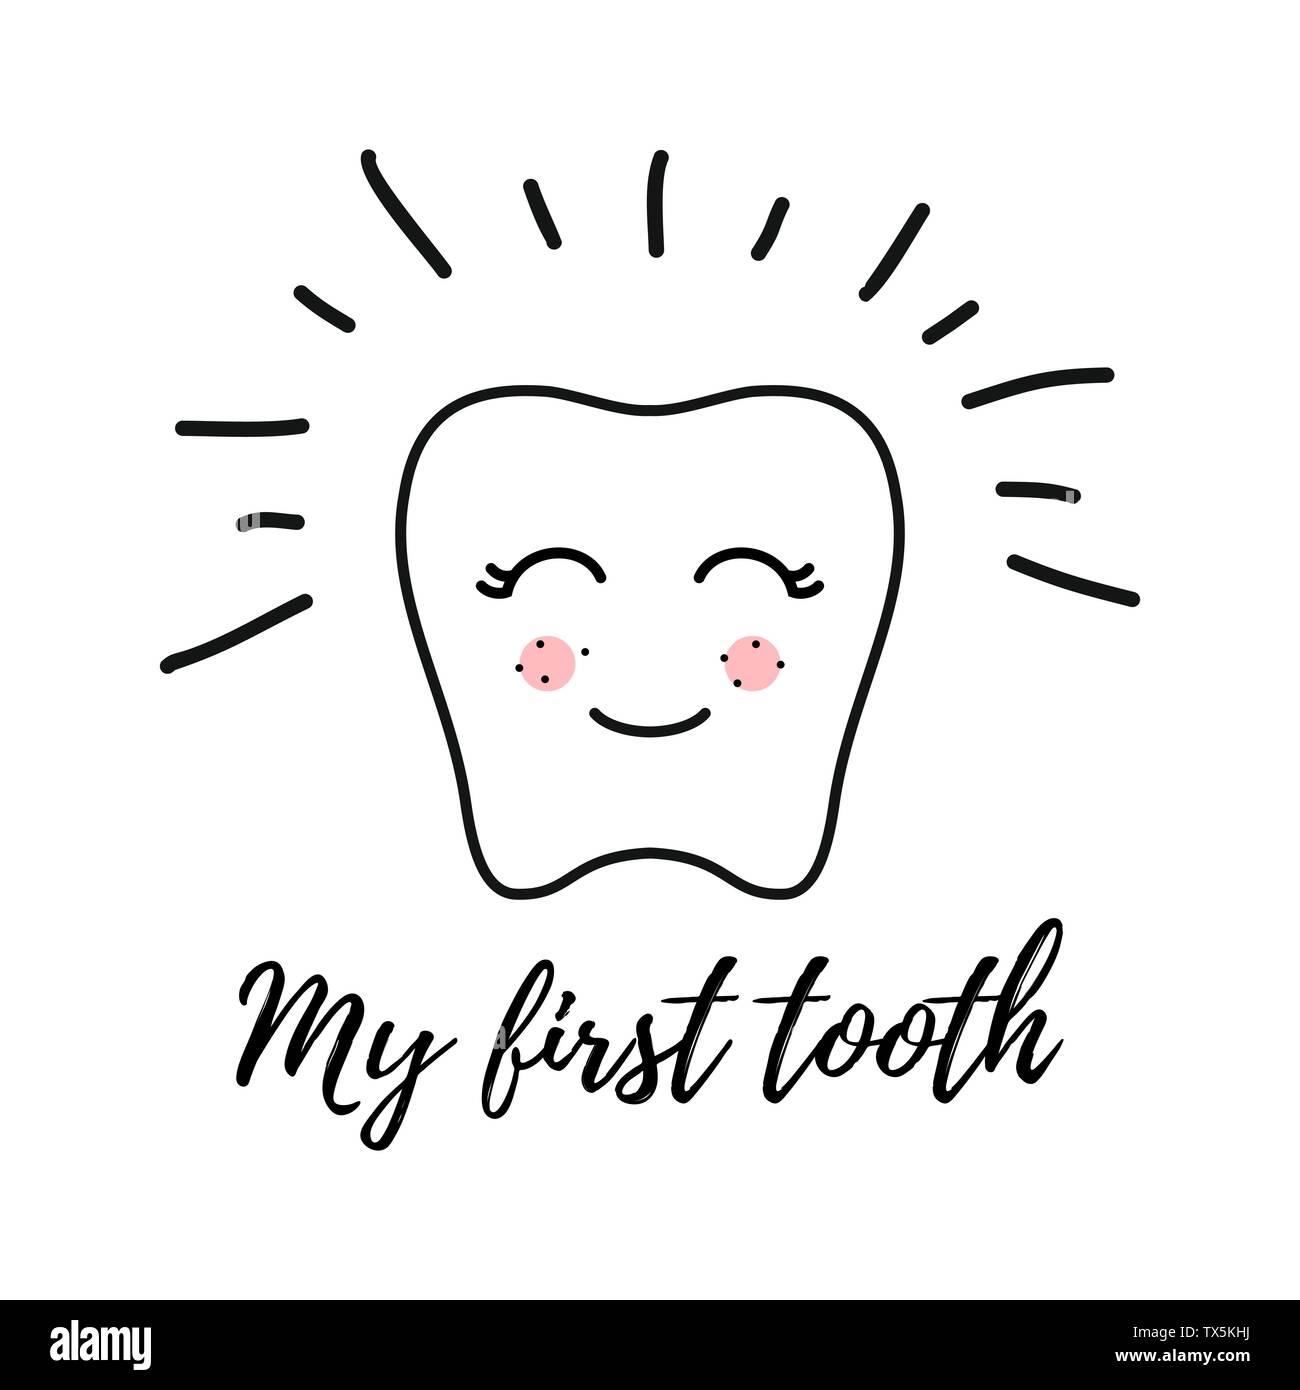 kawaii tooth contour Line With the inscription My First Tooth. Vector illustration of Happy tooth Face isolated On White Background. Template for Prin - Stock Image